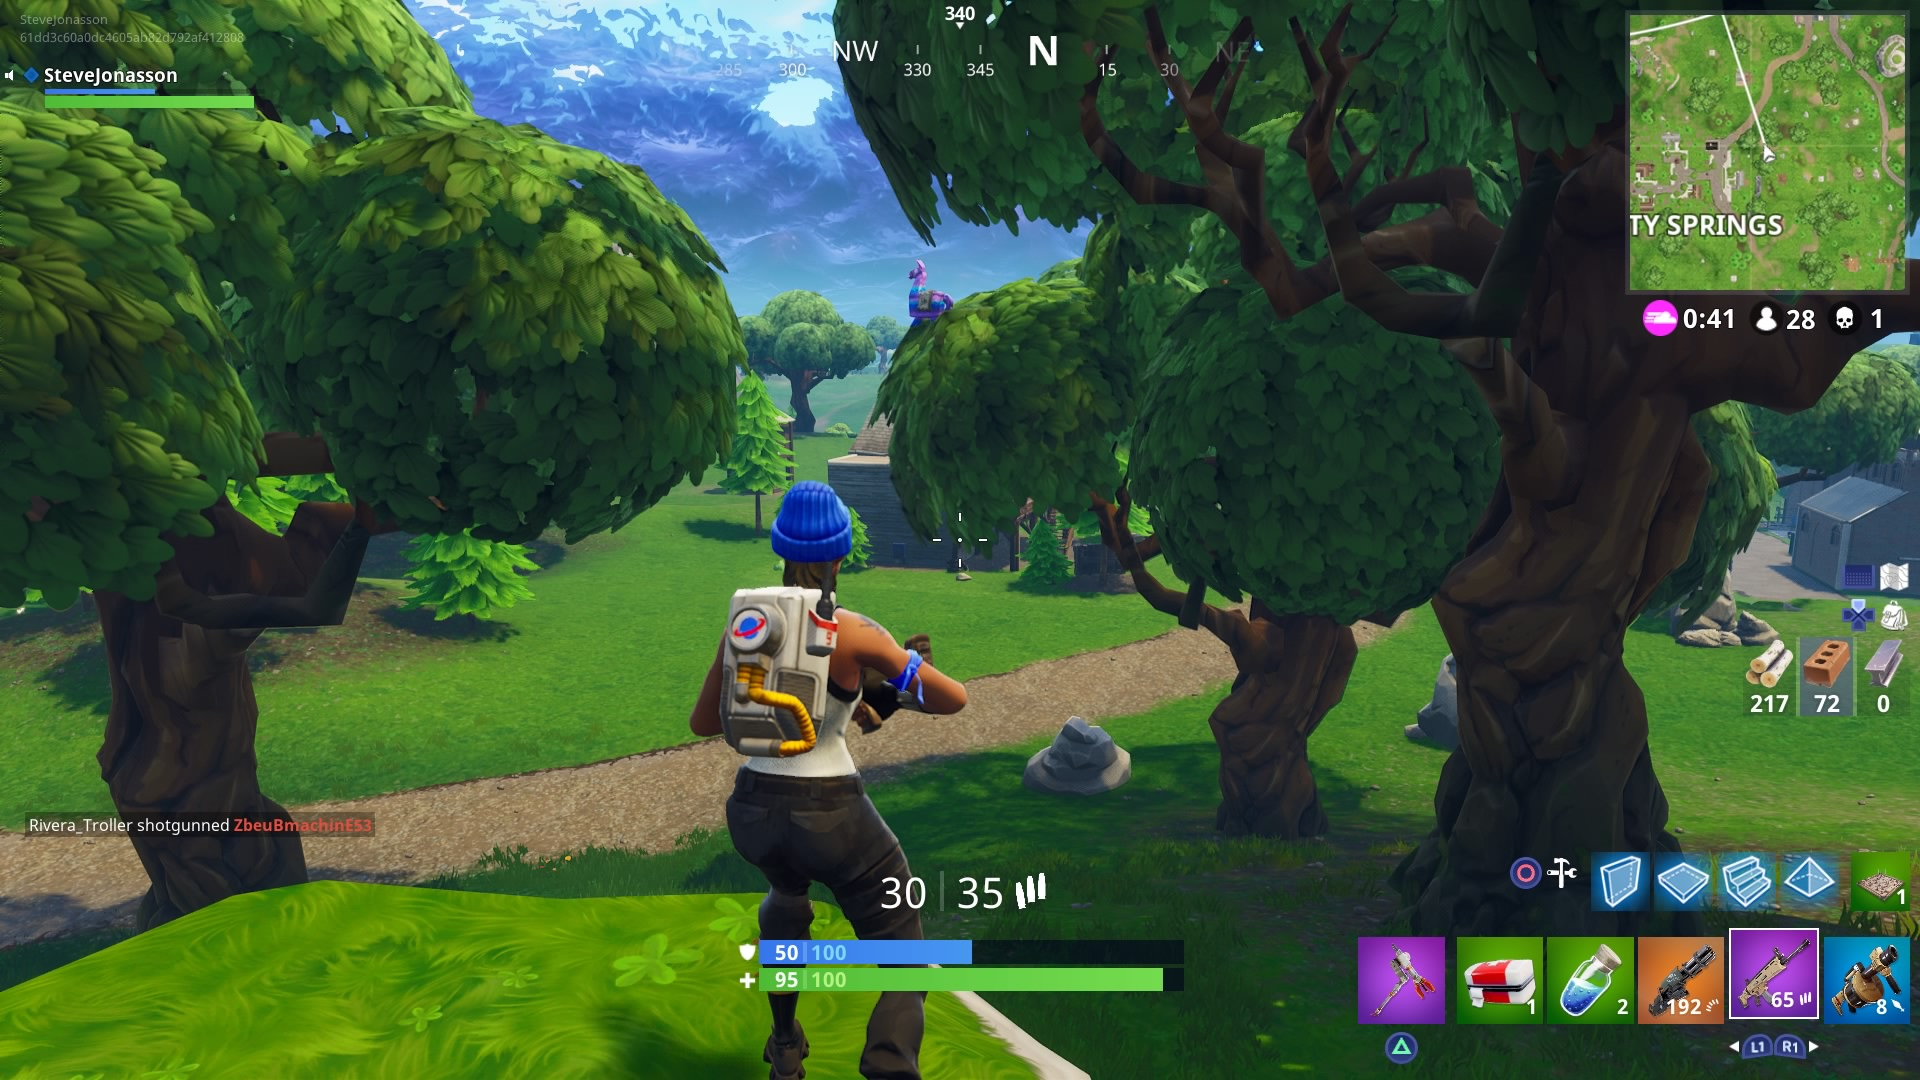 Llama loot box on the tree